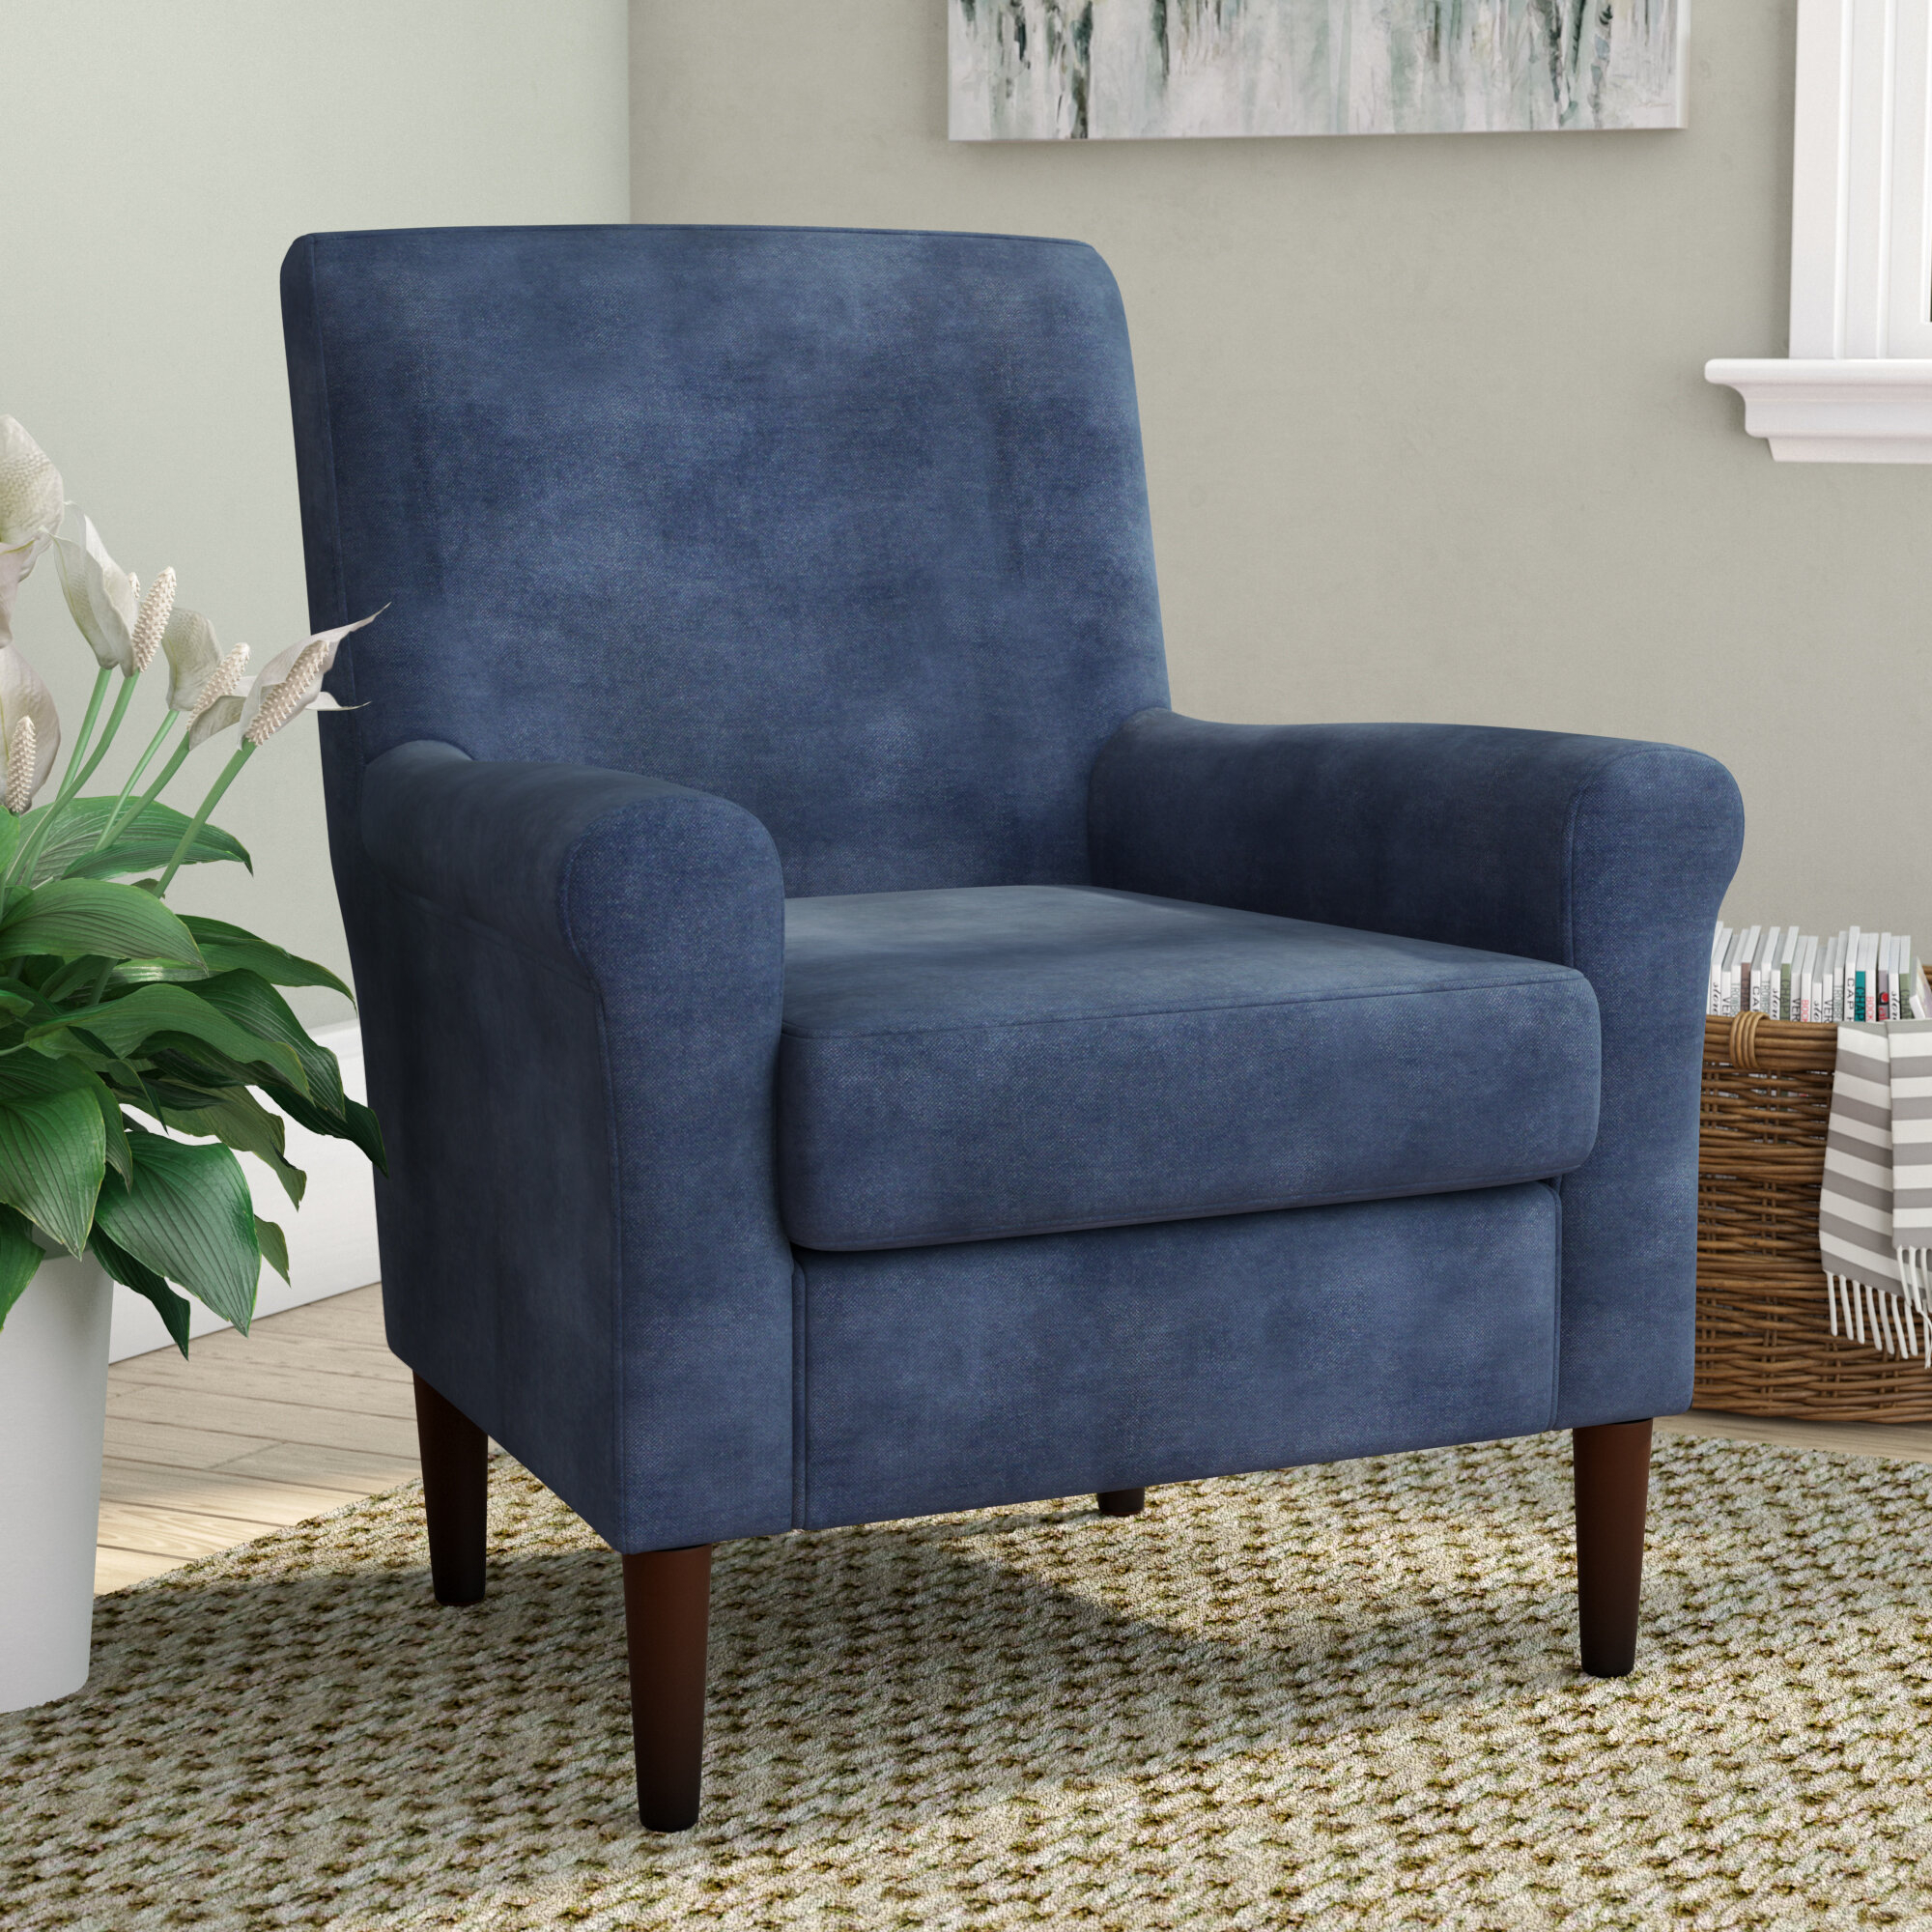 "Andover Mills™ Ronald 28"" W Polyester Blend Armchair Throughout Polyester Blend Armchairs (View 13 of 15)"